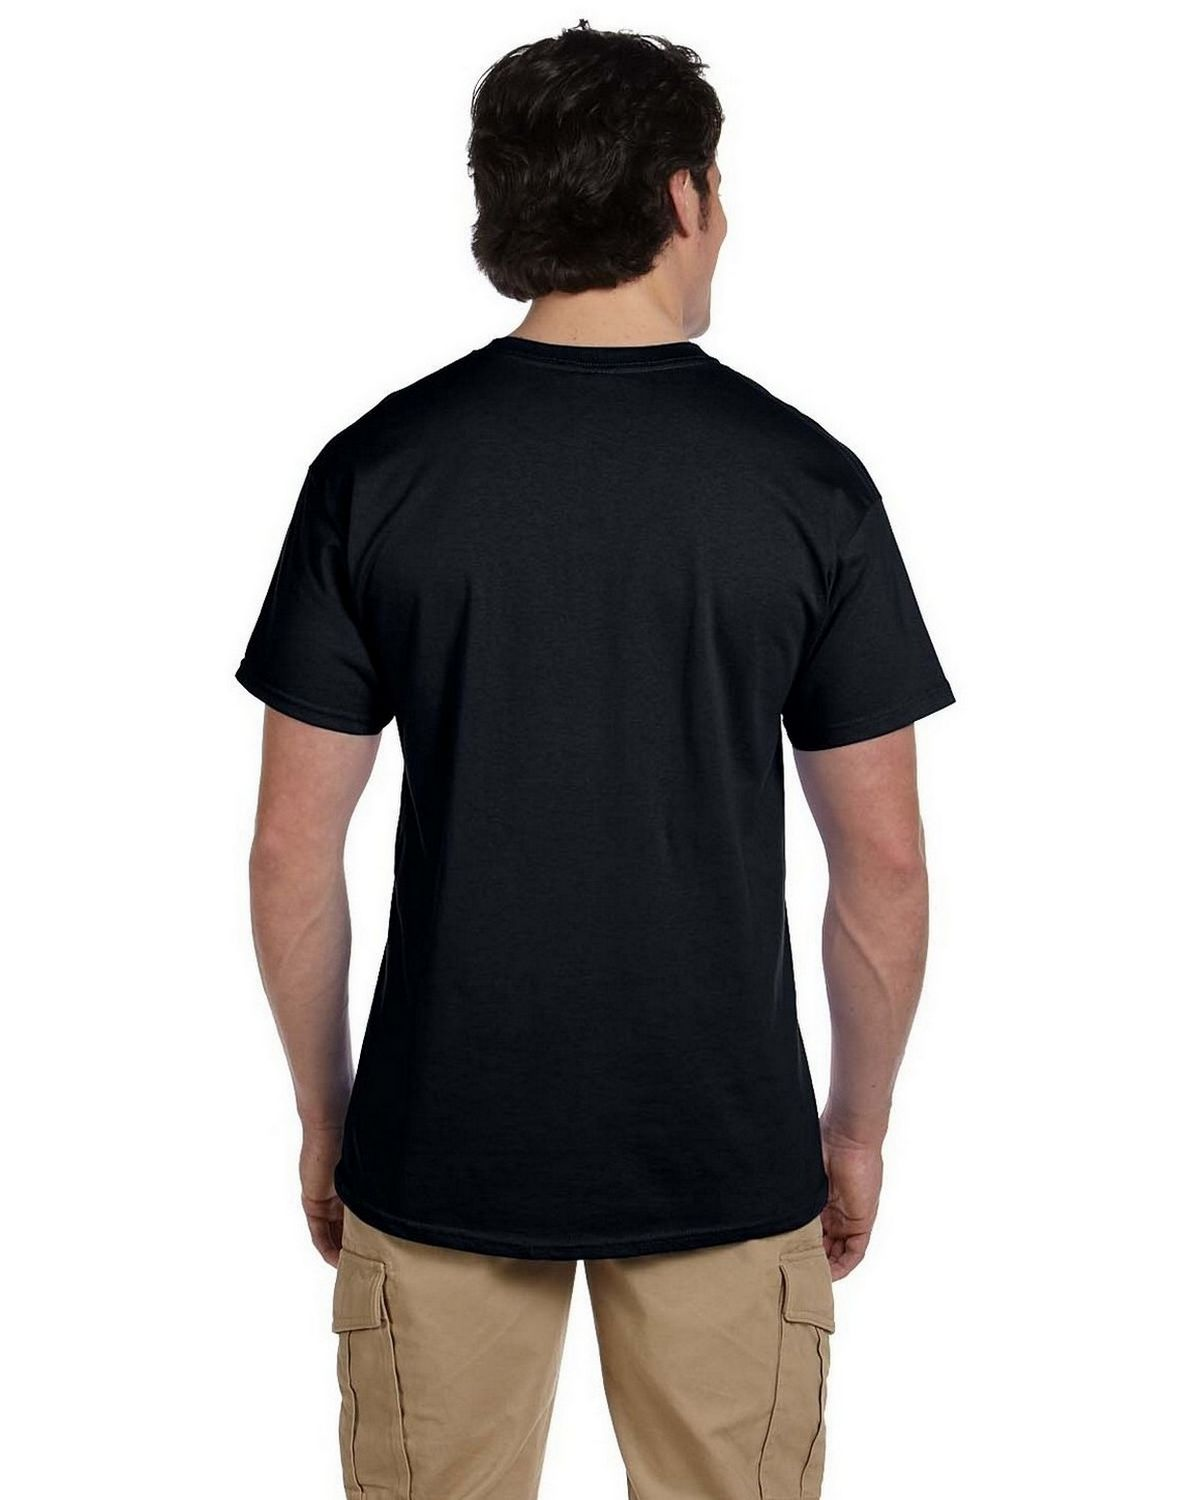 g200 gildan ultra cotton t shirt review